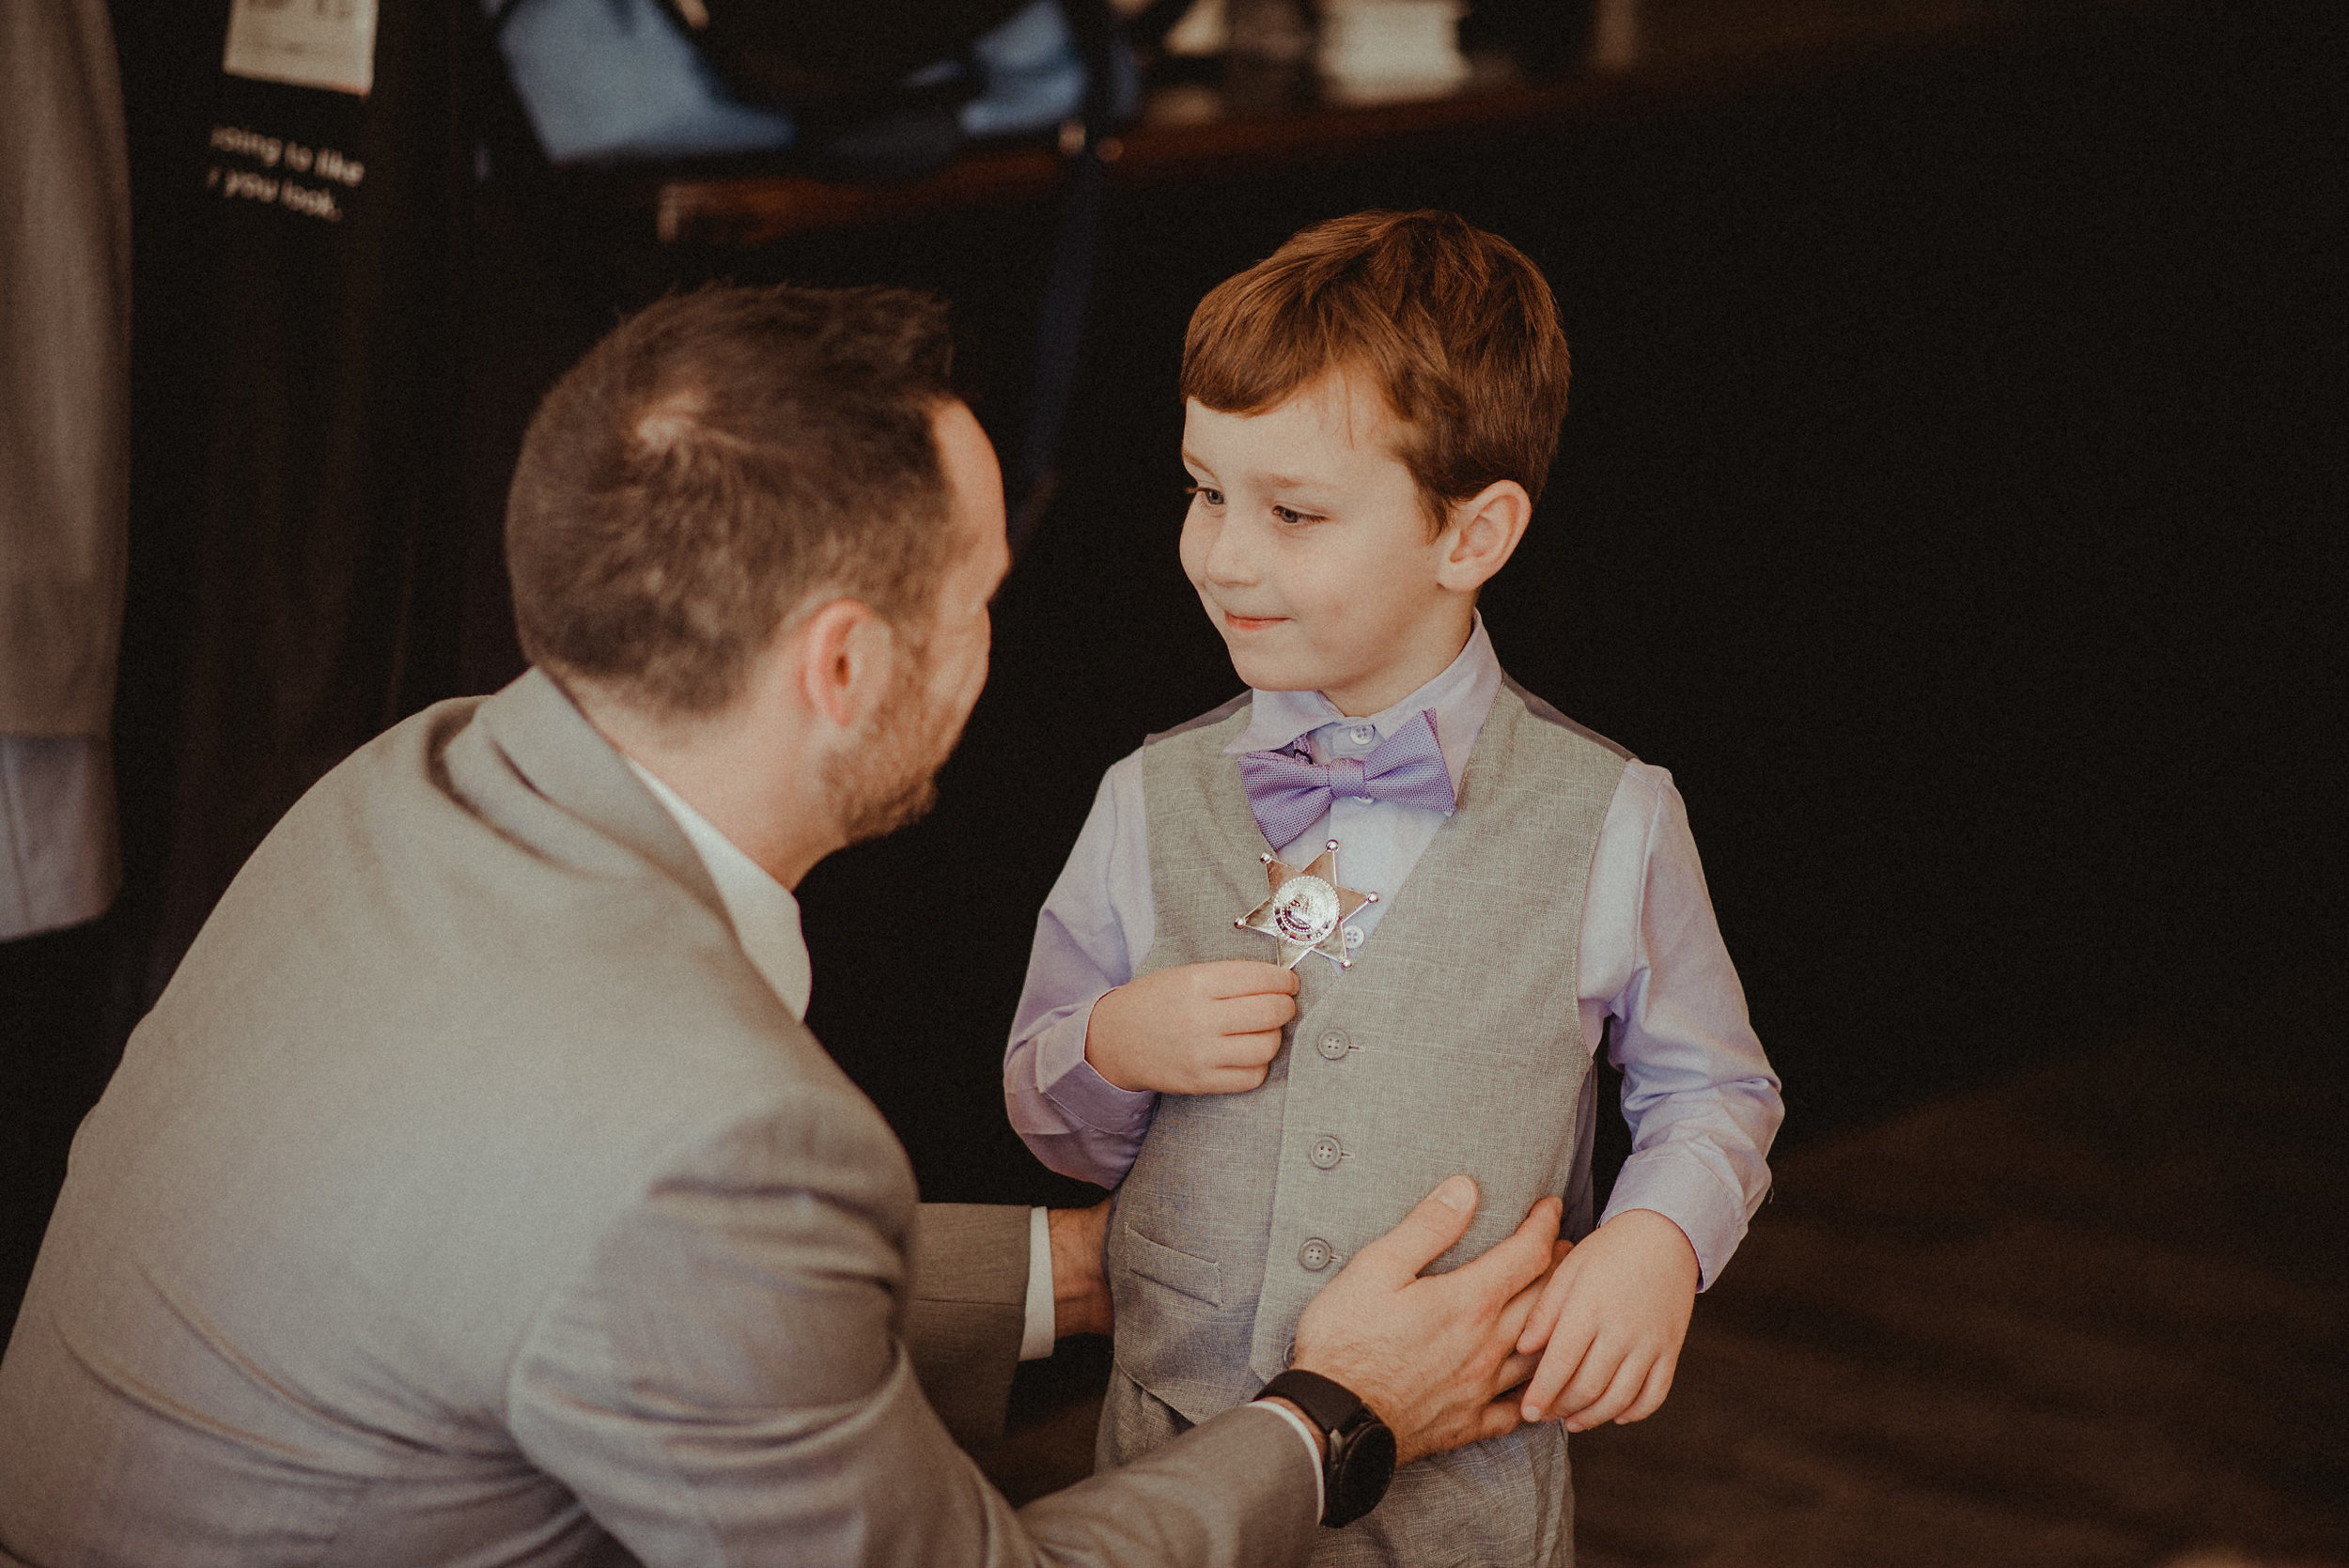 Groom and son on wedding day